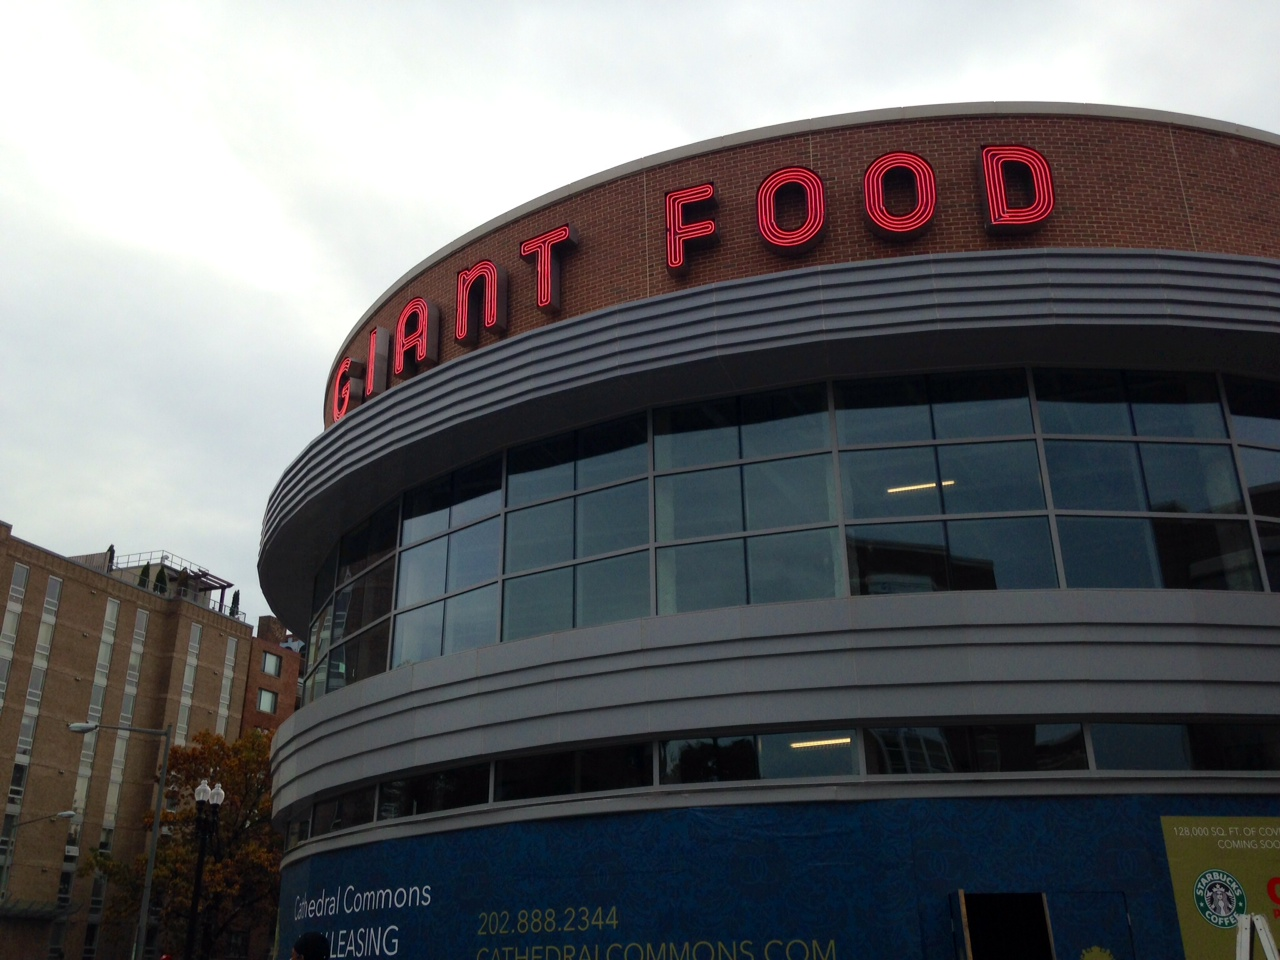 Drink while you shop: Giant Food opens in new NW development